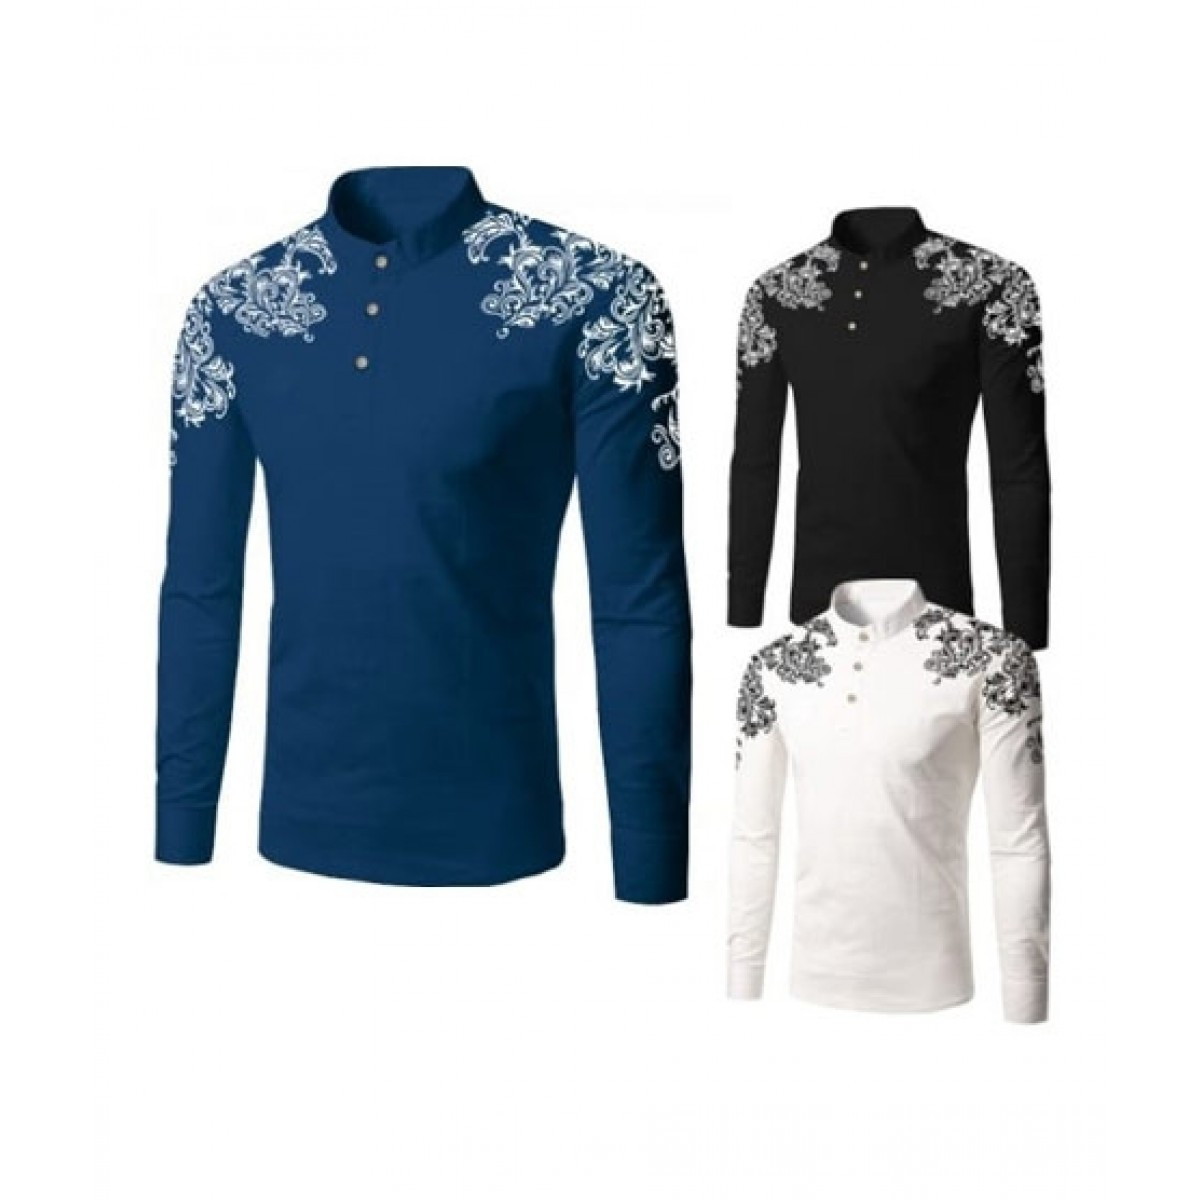 Bin Rizwan Collections Shoulder Printed Full Sleeves T-Shirt - Pack of 3